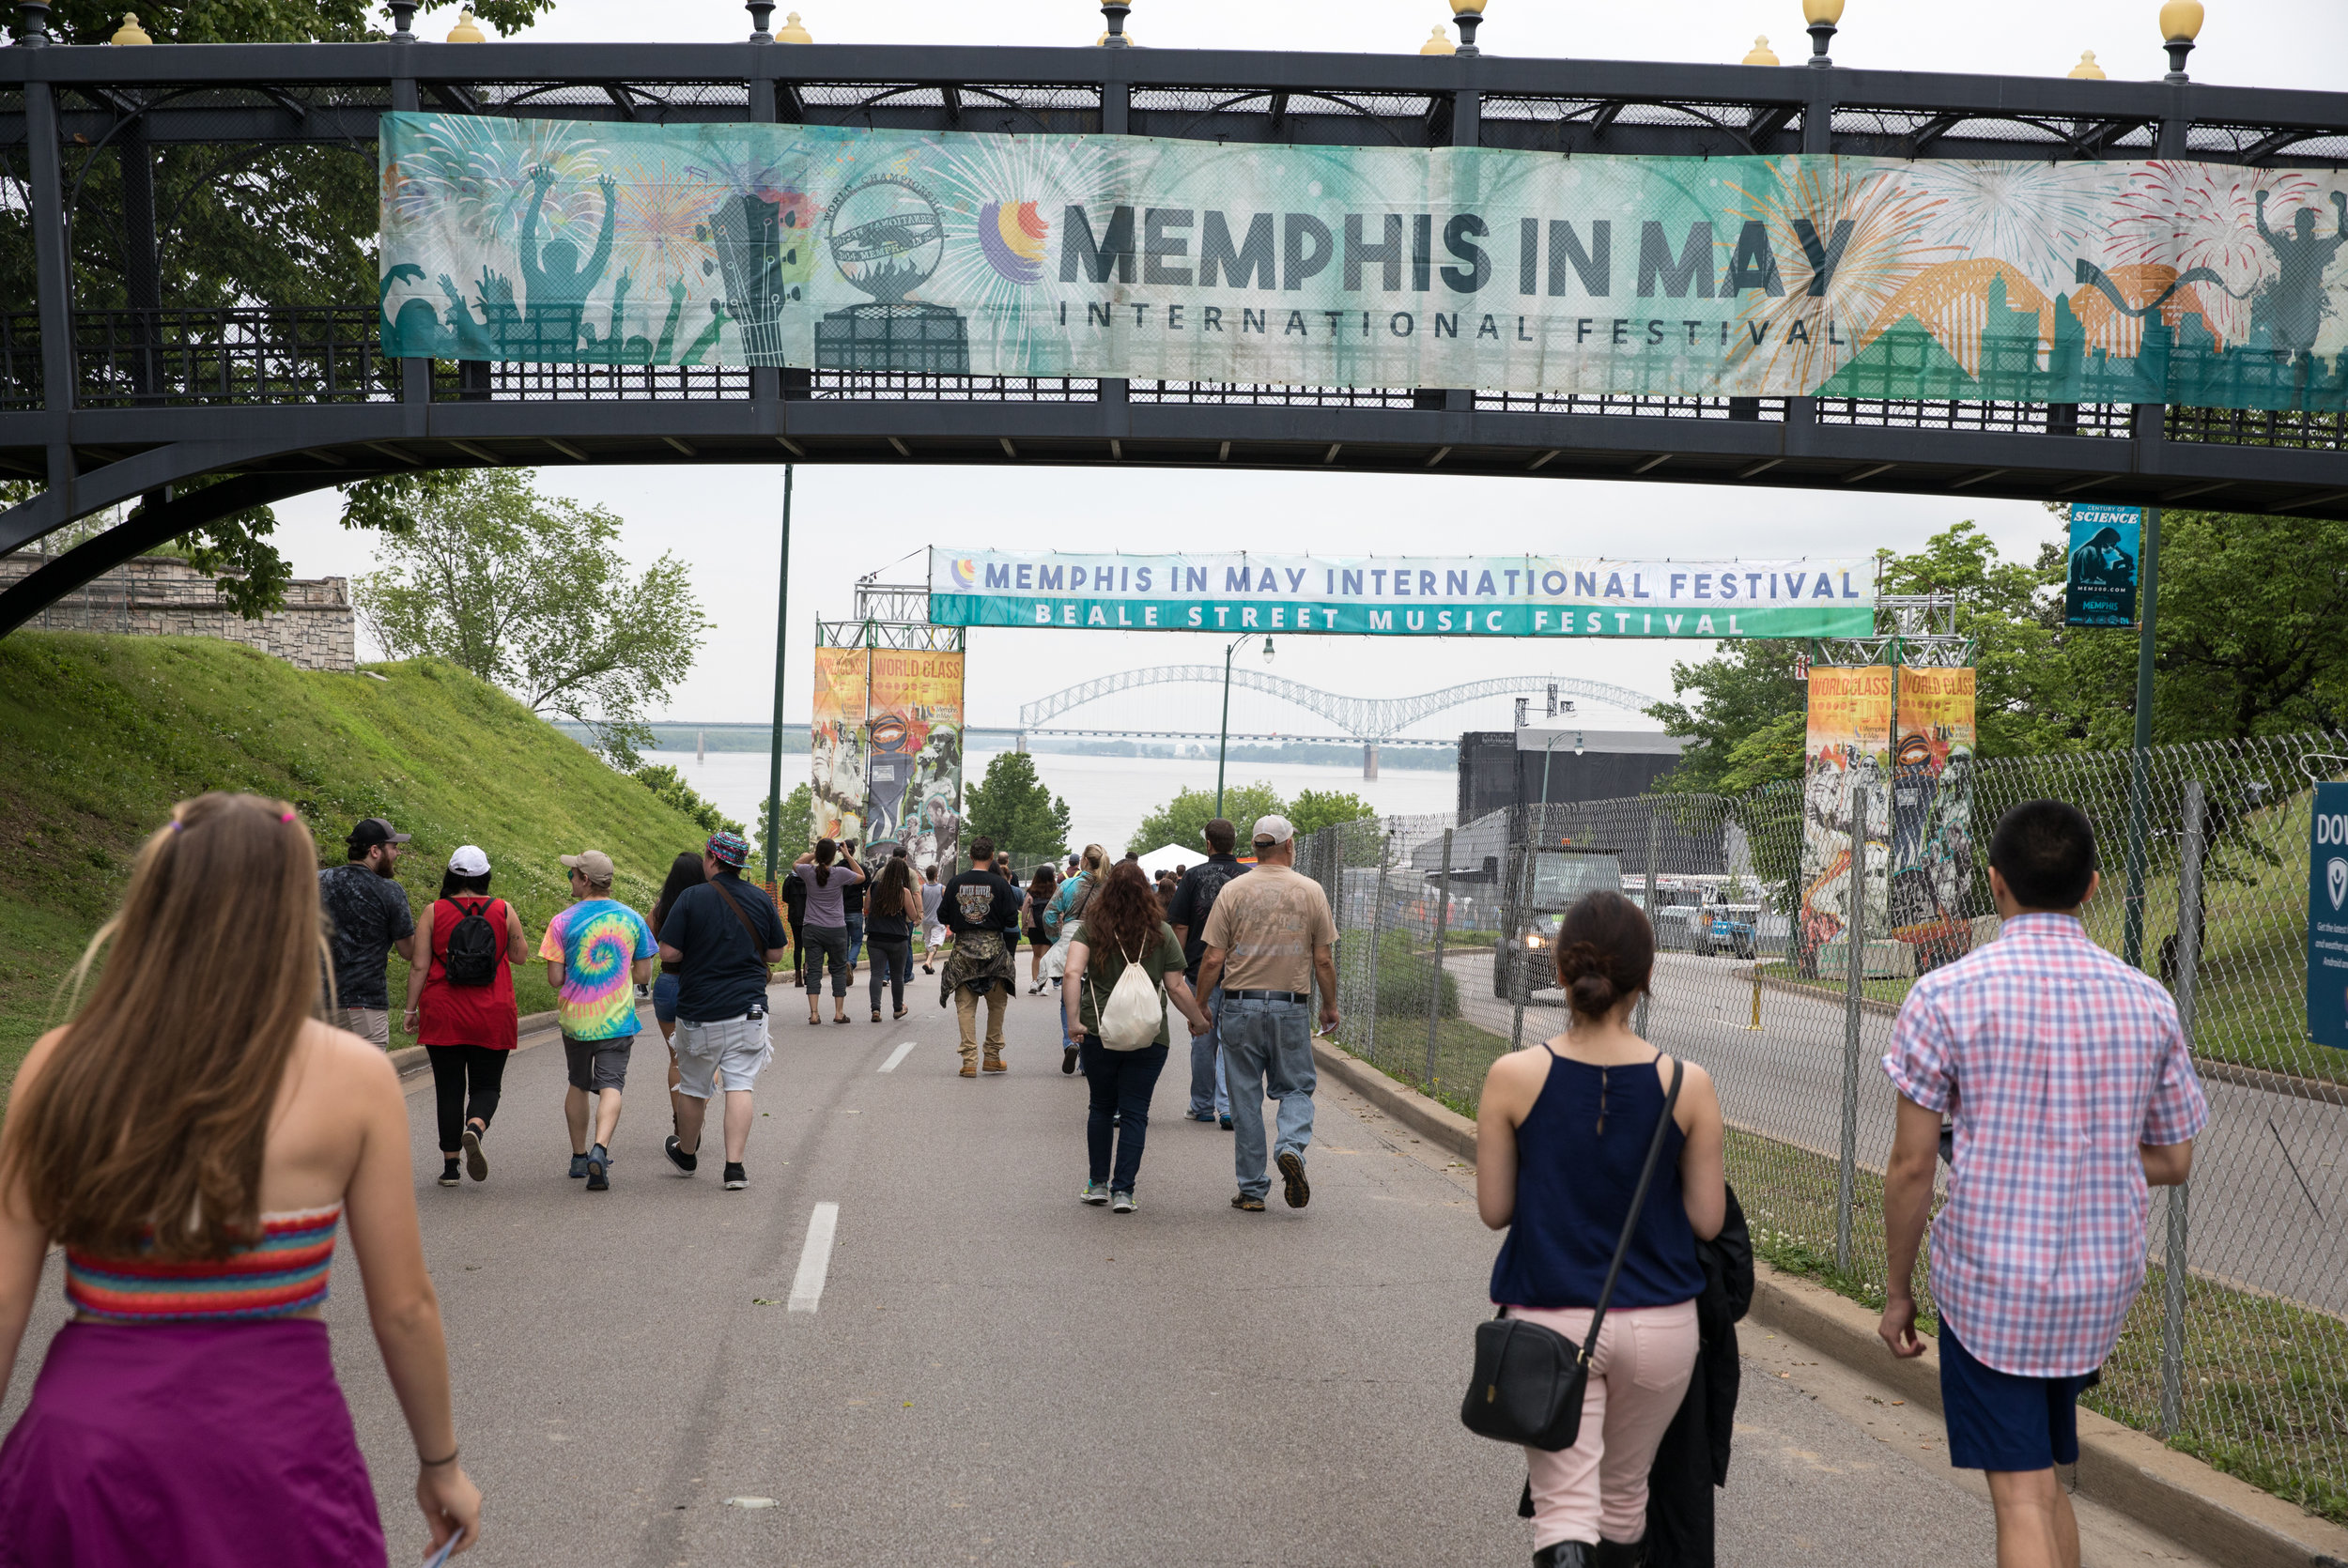 Memphis-In-May_Beale-Street-Music-Festival_Bridge-Banners_Events_LSIGraphics_Memphis-TN ..